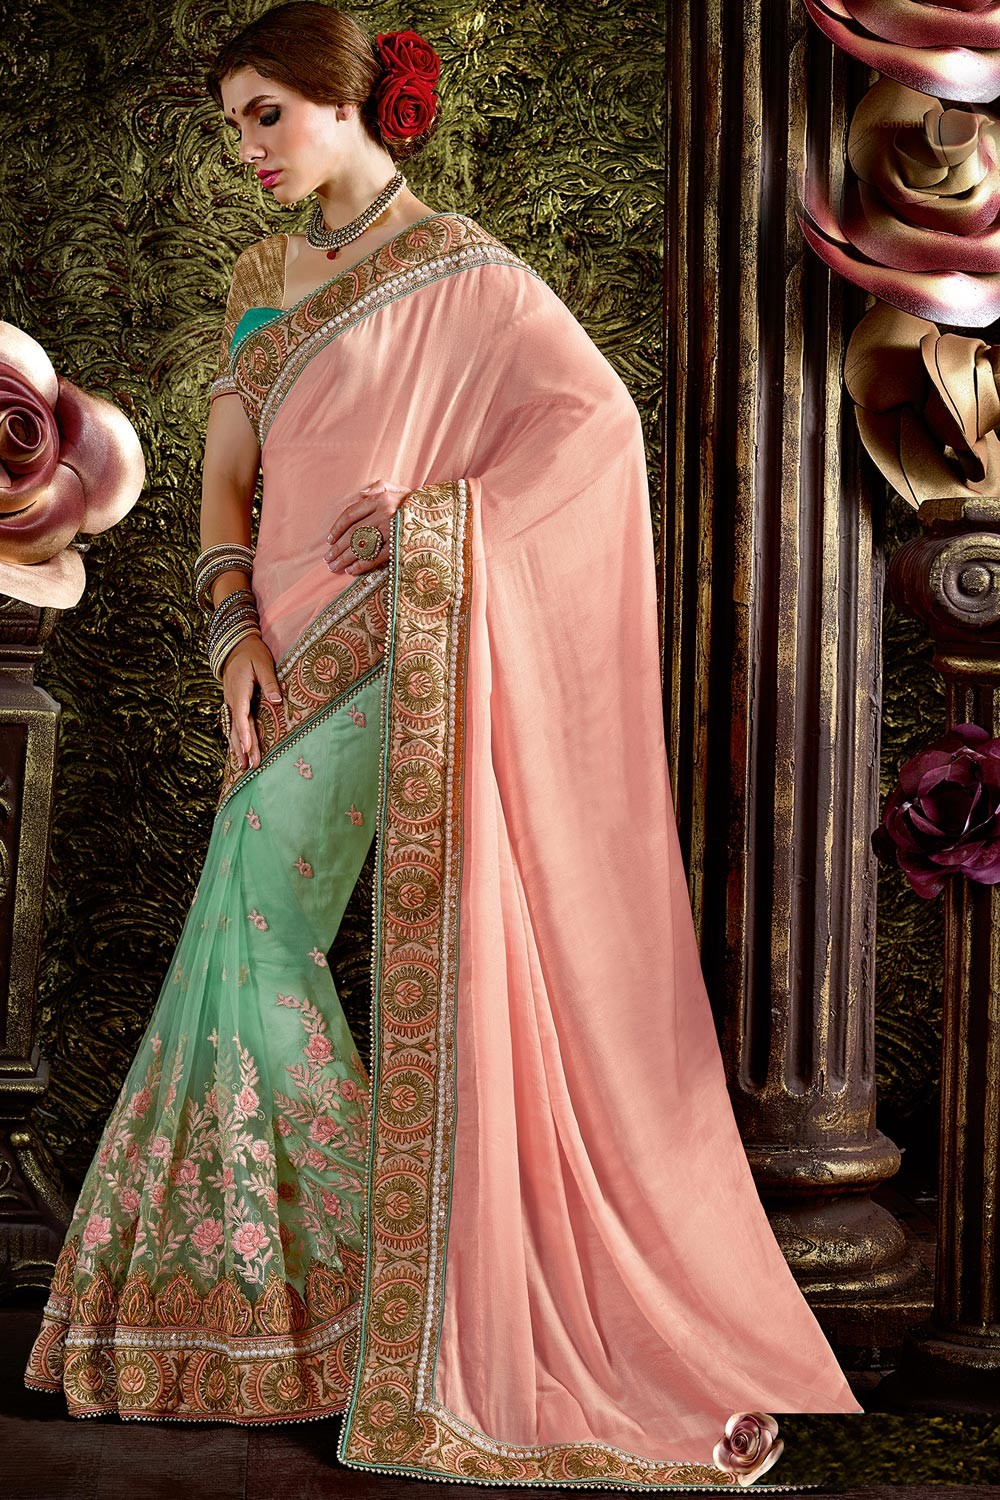 f63f78cbb08279 Paaneri Designer Half & Half Peach With Mint Blue Color Floral Thread  Embroidery Border Net & Art Silk Saree-Product Code-17119440504 - Wedding -  Sarees - ...